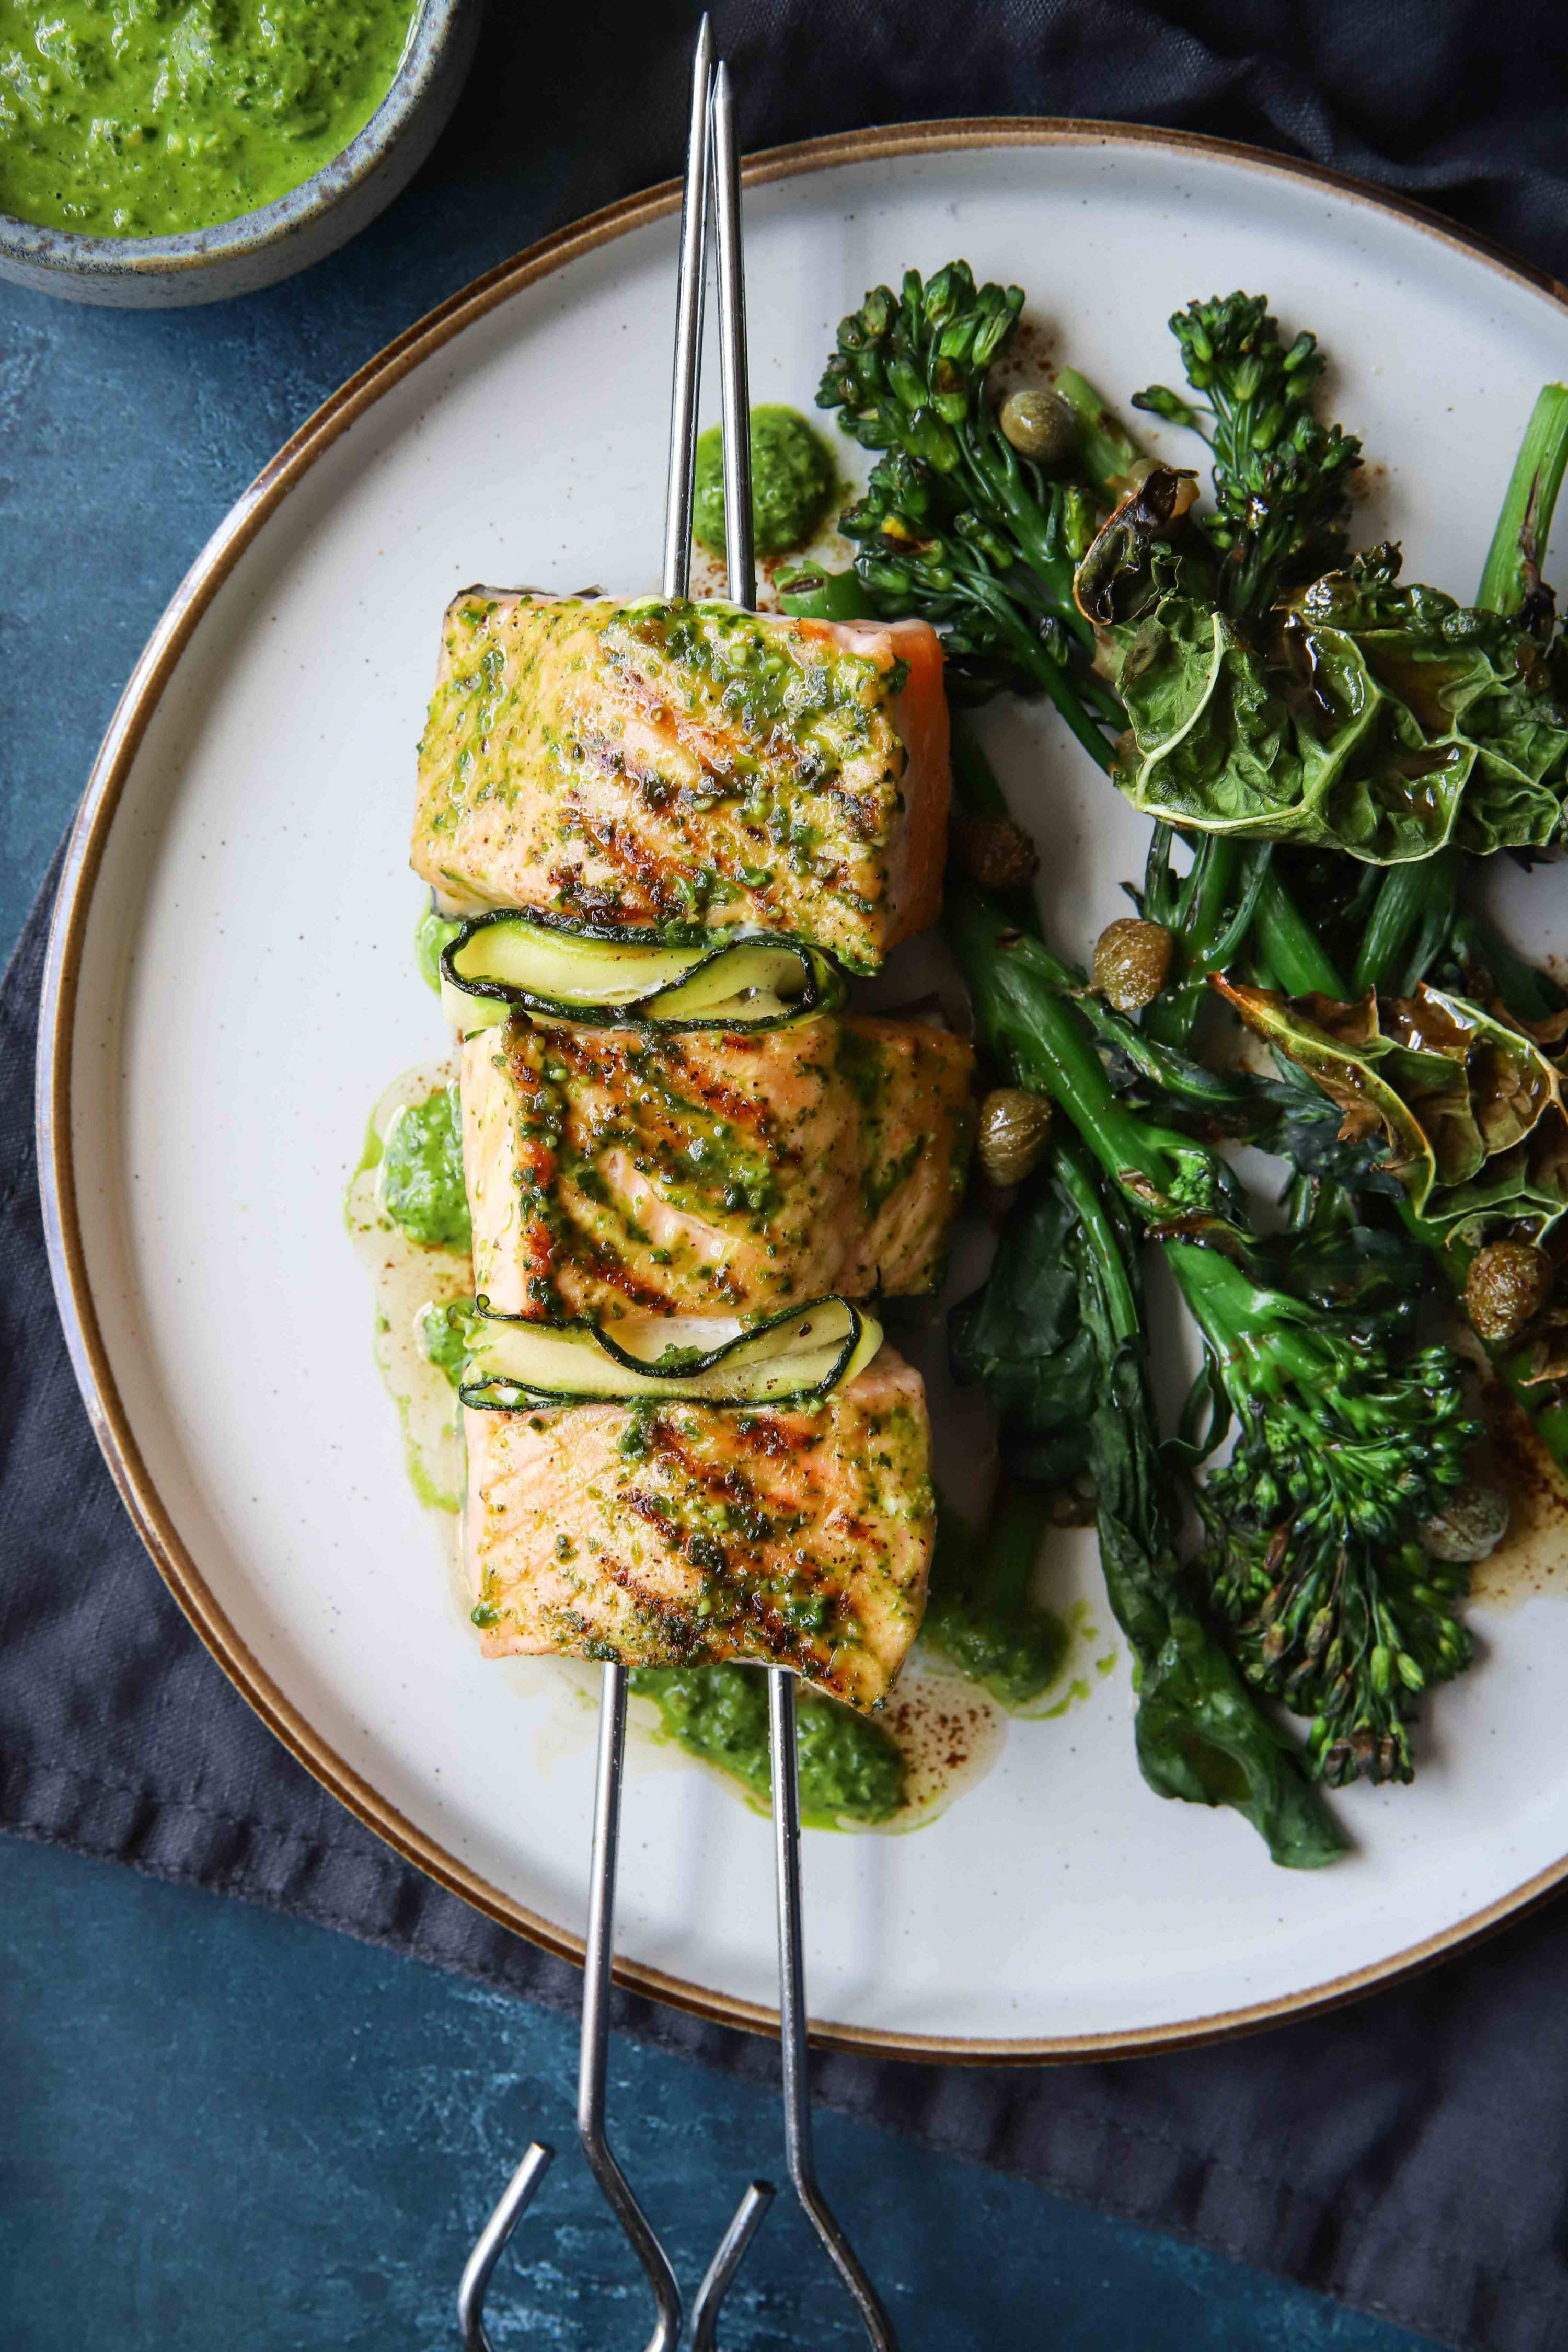 Juicy, grilled salmon skewers brushed with basil, garlic & baby spinach pesto, this pesto salmon recipe with tenderstem broccoli is divine!